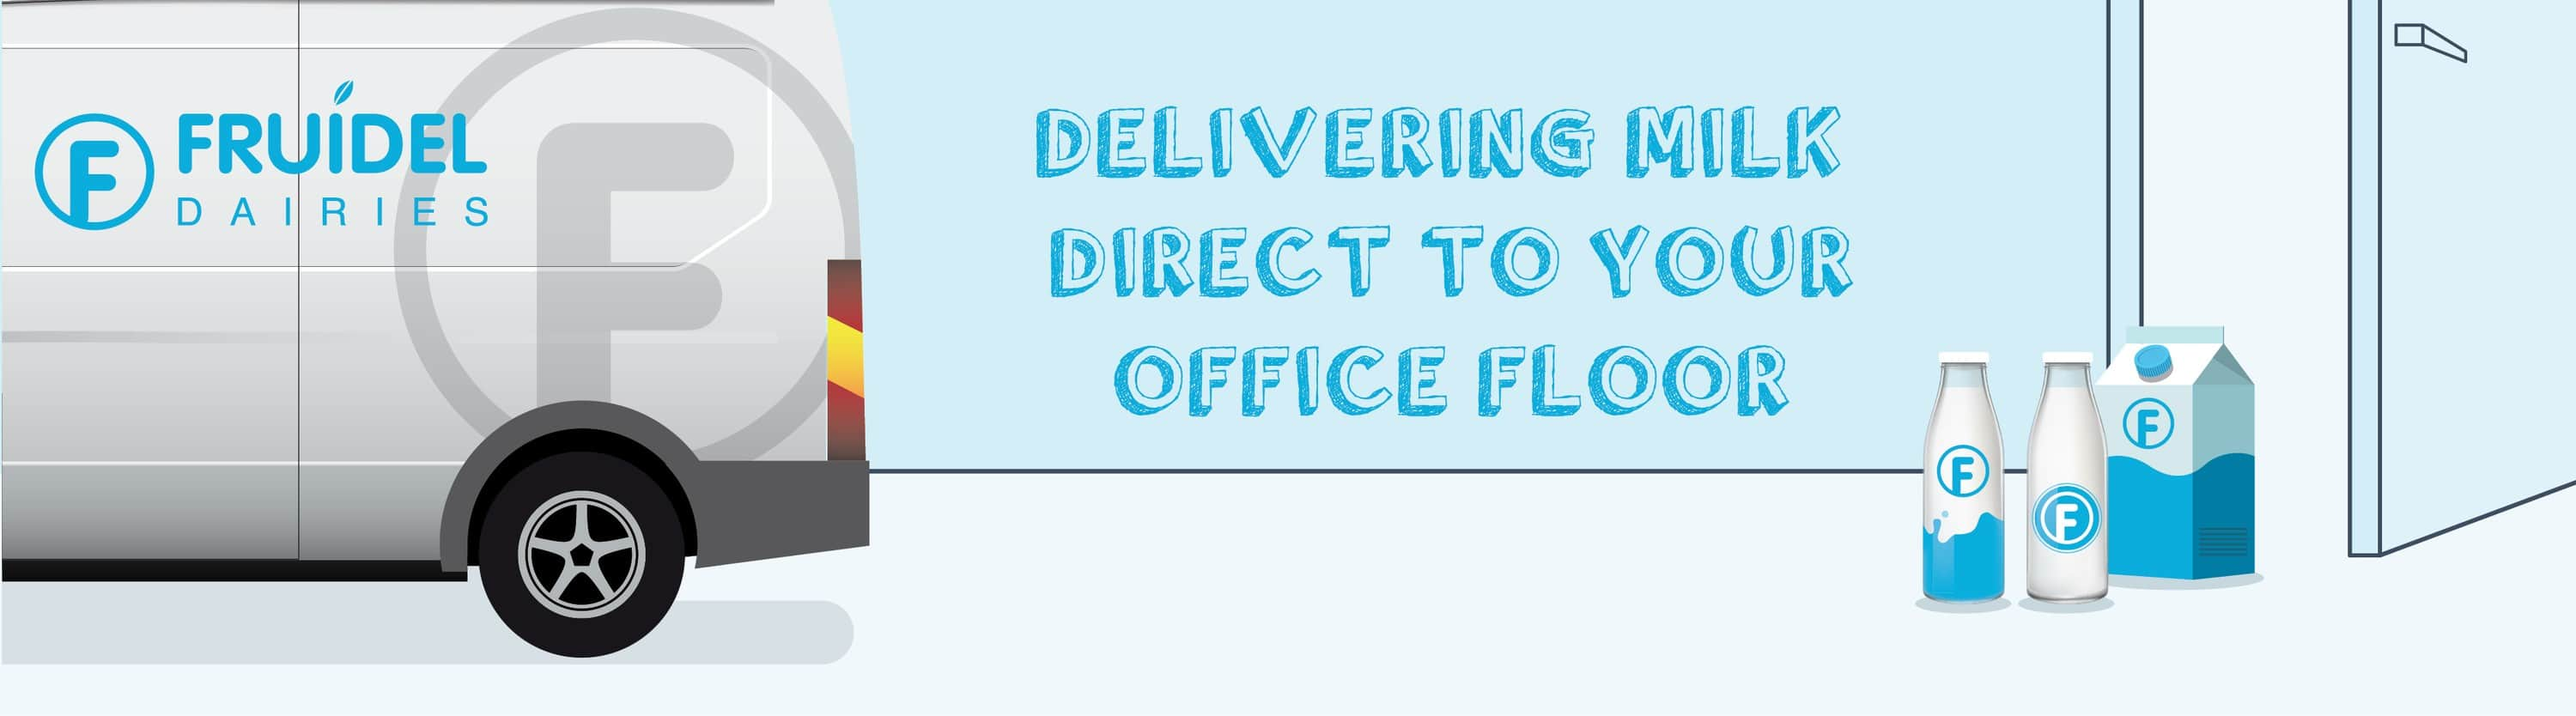 Delivering milk direct to your office floor